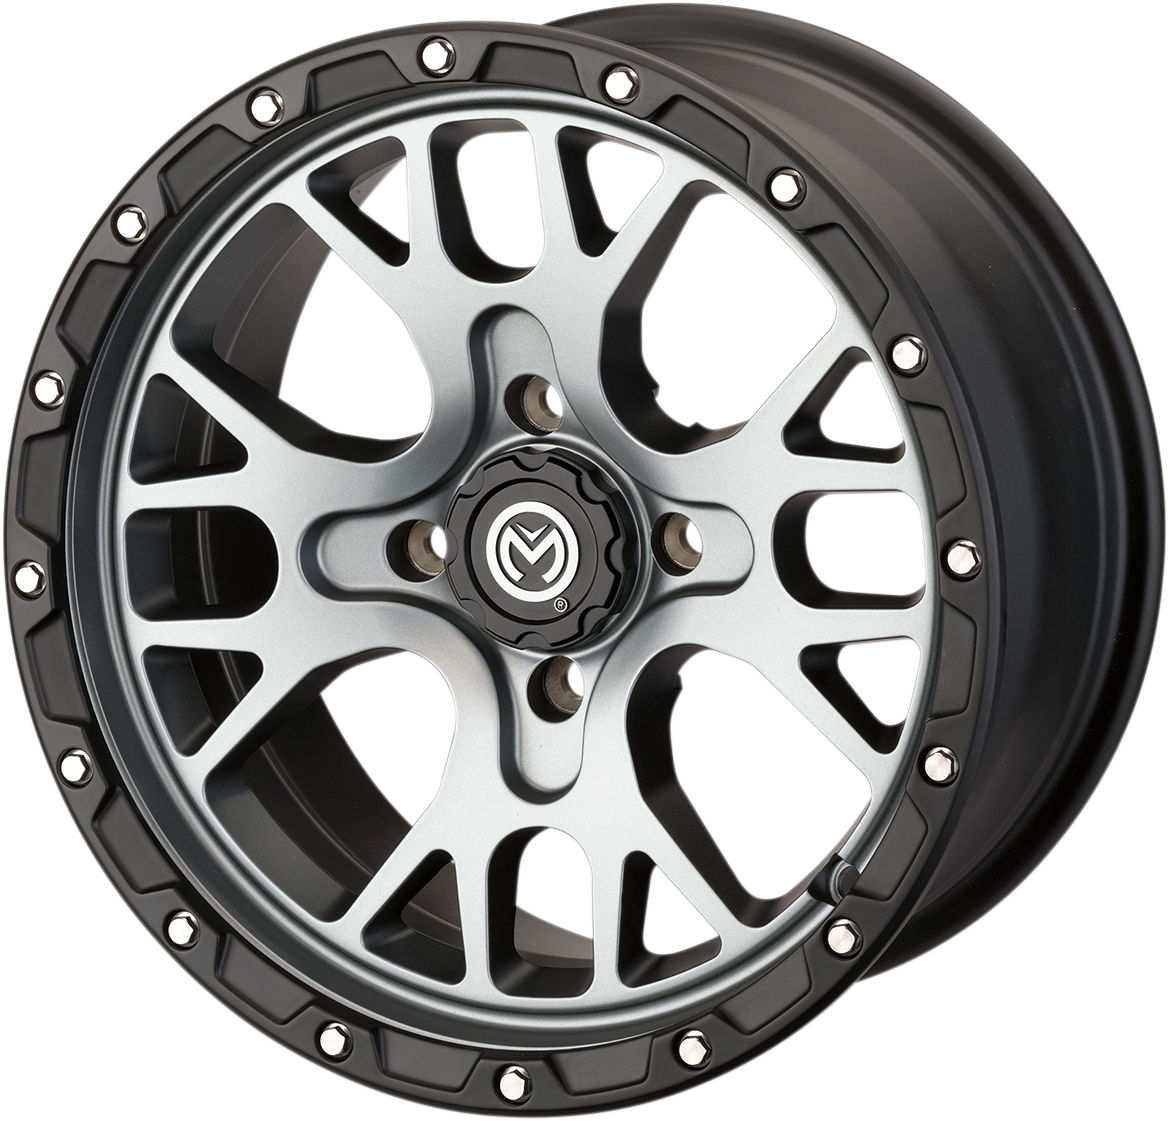 Moose 14x7 4/156 4+3 545X Satin Gray & Black Rocker vannesarja Polaris